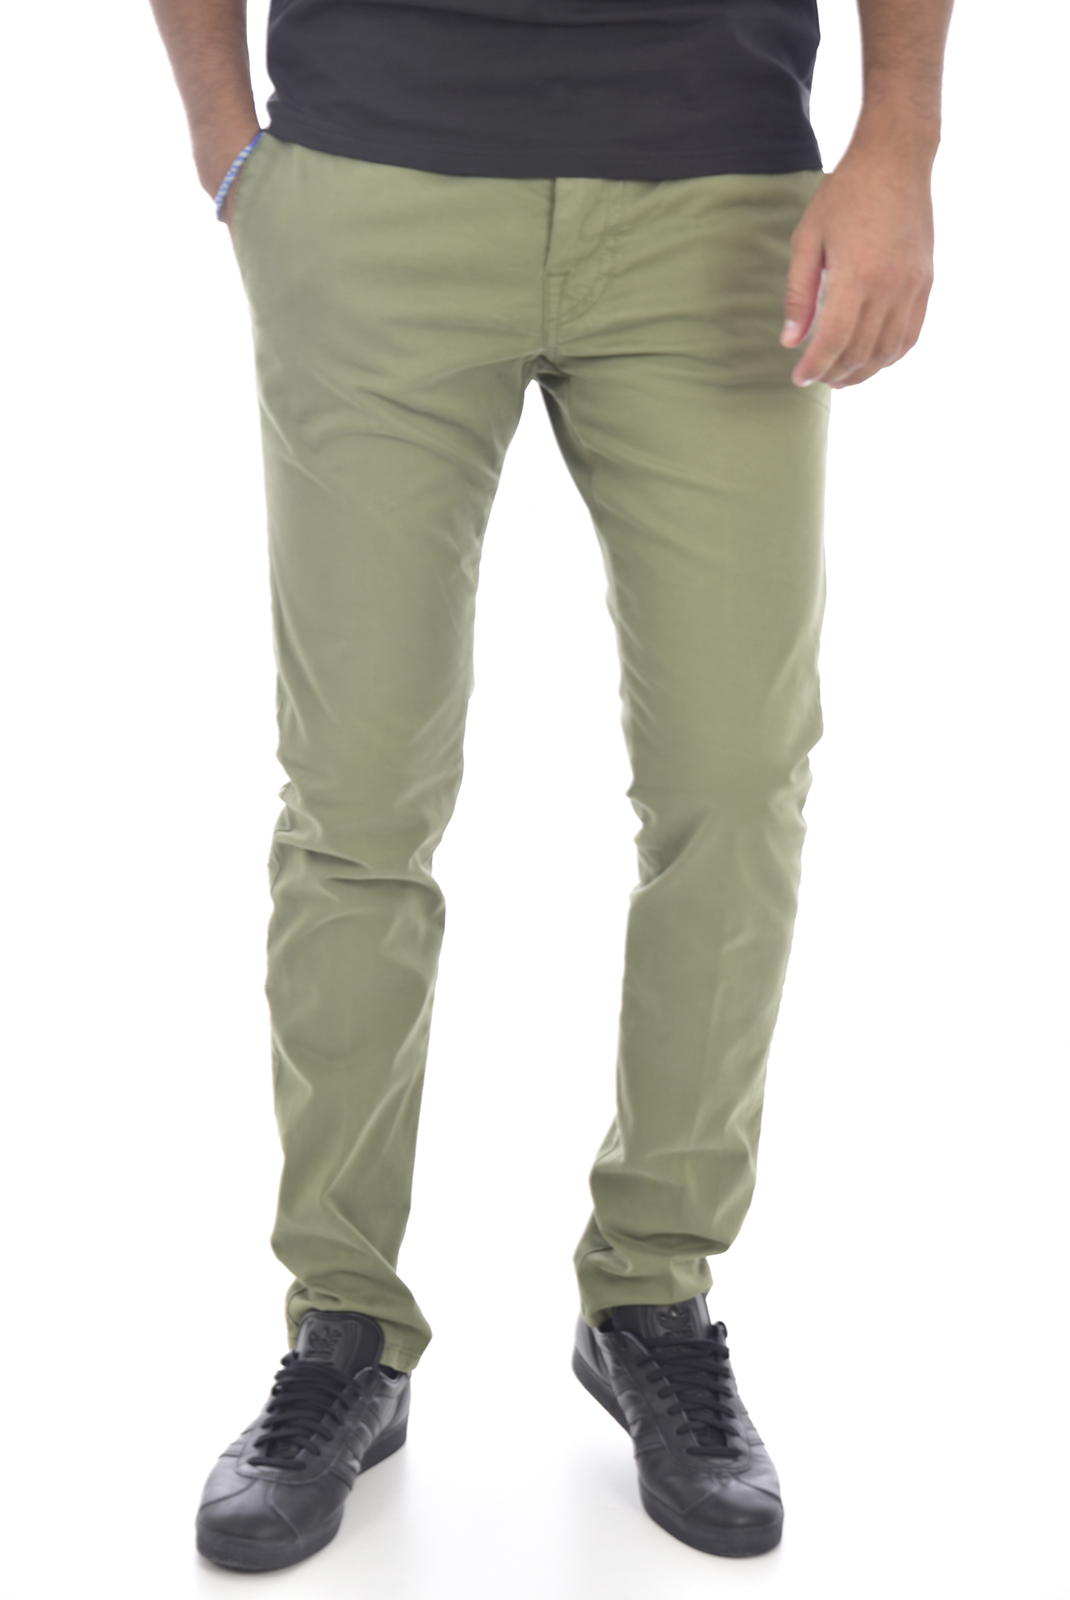 Pantalons chino/citadin  Guess jeans M94B29 WC7Y0 DANIEL VERT/DEEP JUNGLE